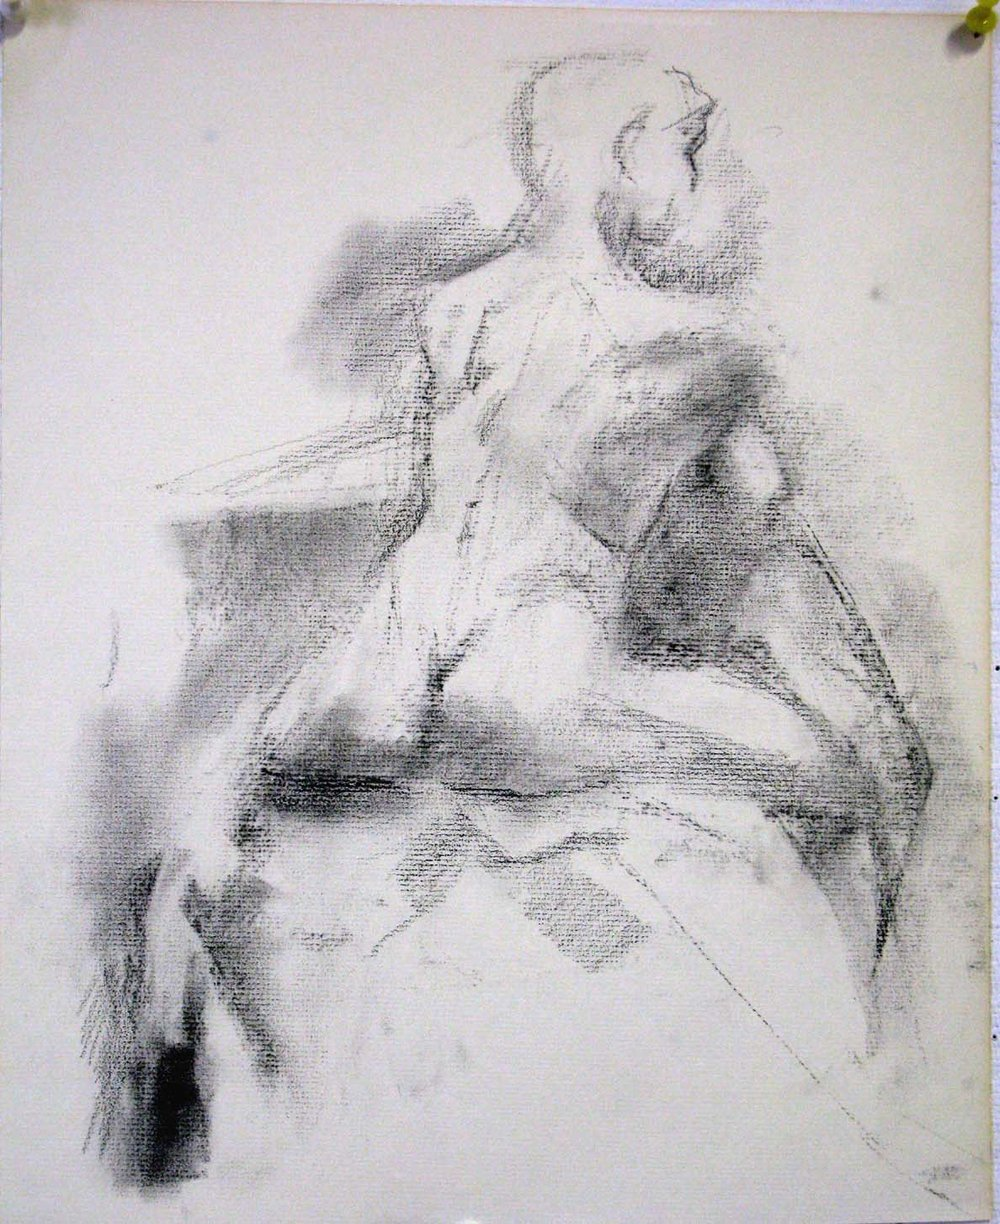 Seated Female Nude, Back, 15 x 12 inches, charcoal.